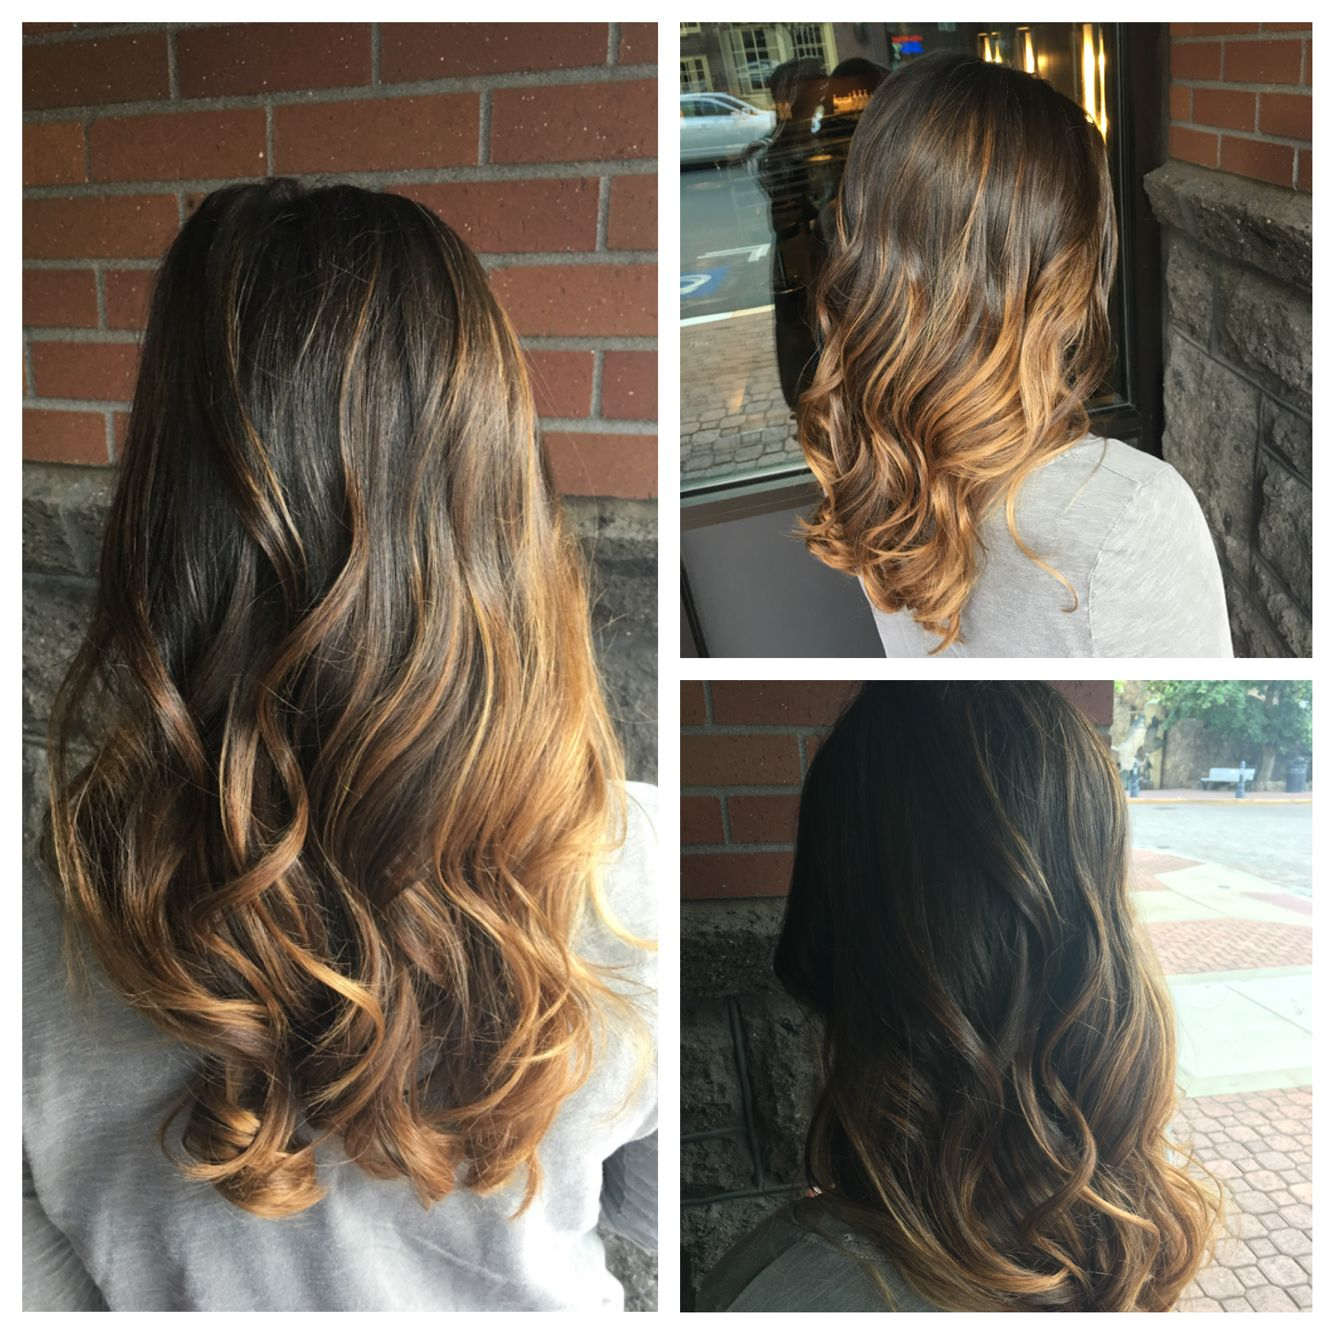 First Time Getting Balayage I M A Dark Brunette And I Love It Subtle Yet Dramatic Done By Amanda At Tange Balayage Short Hair Balayage Balayage Hair Ash